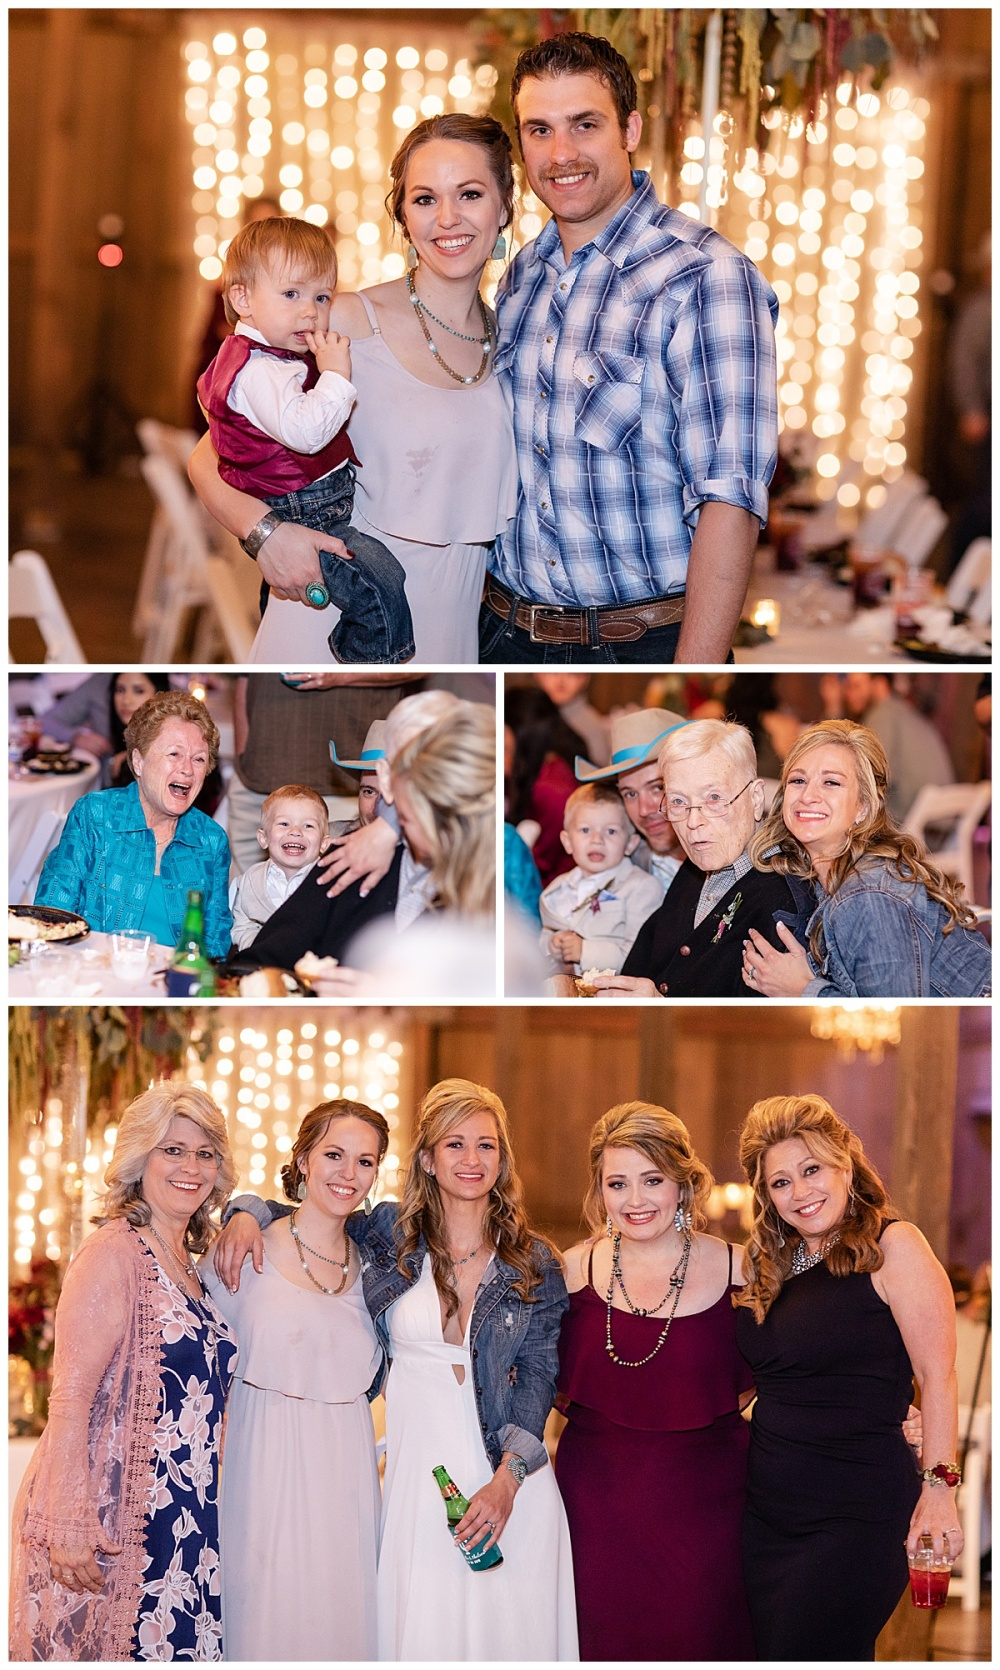 Eagle-Dancer-Ranch-Boerne-Texas-Wedding-Party-Barn-Carly-Barton-Photography_0051.jpg